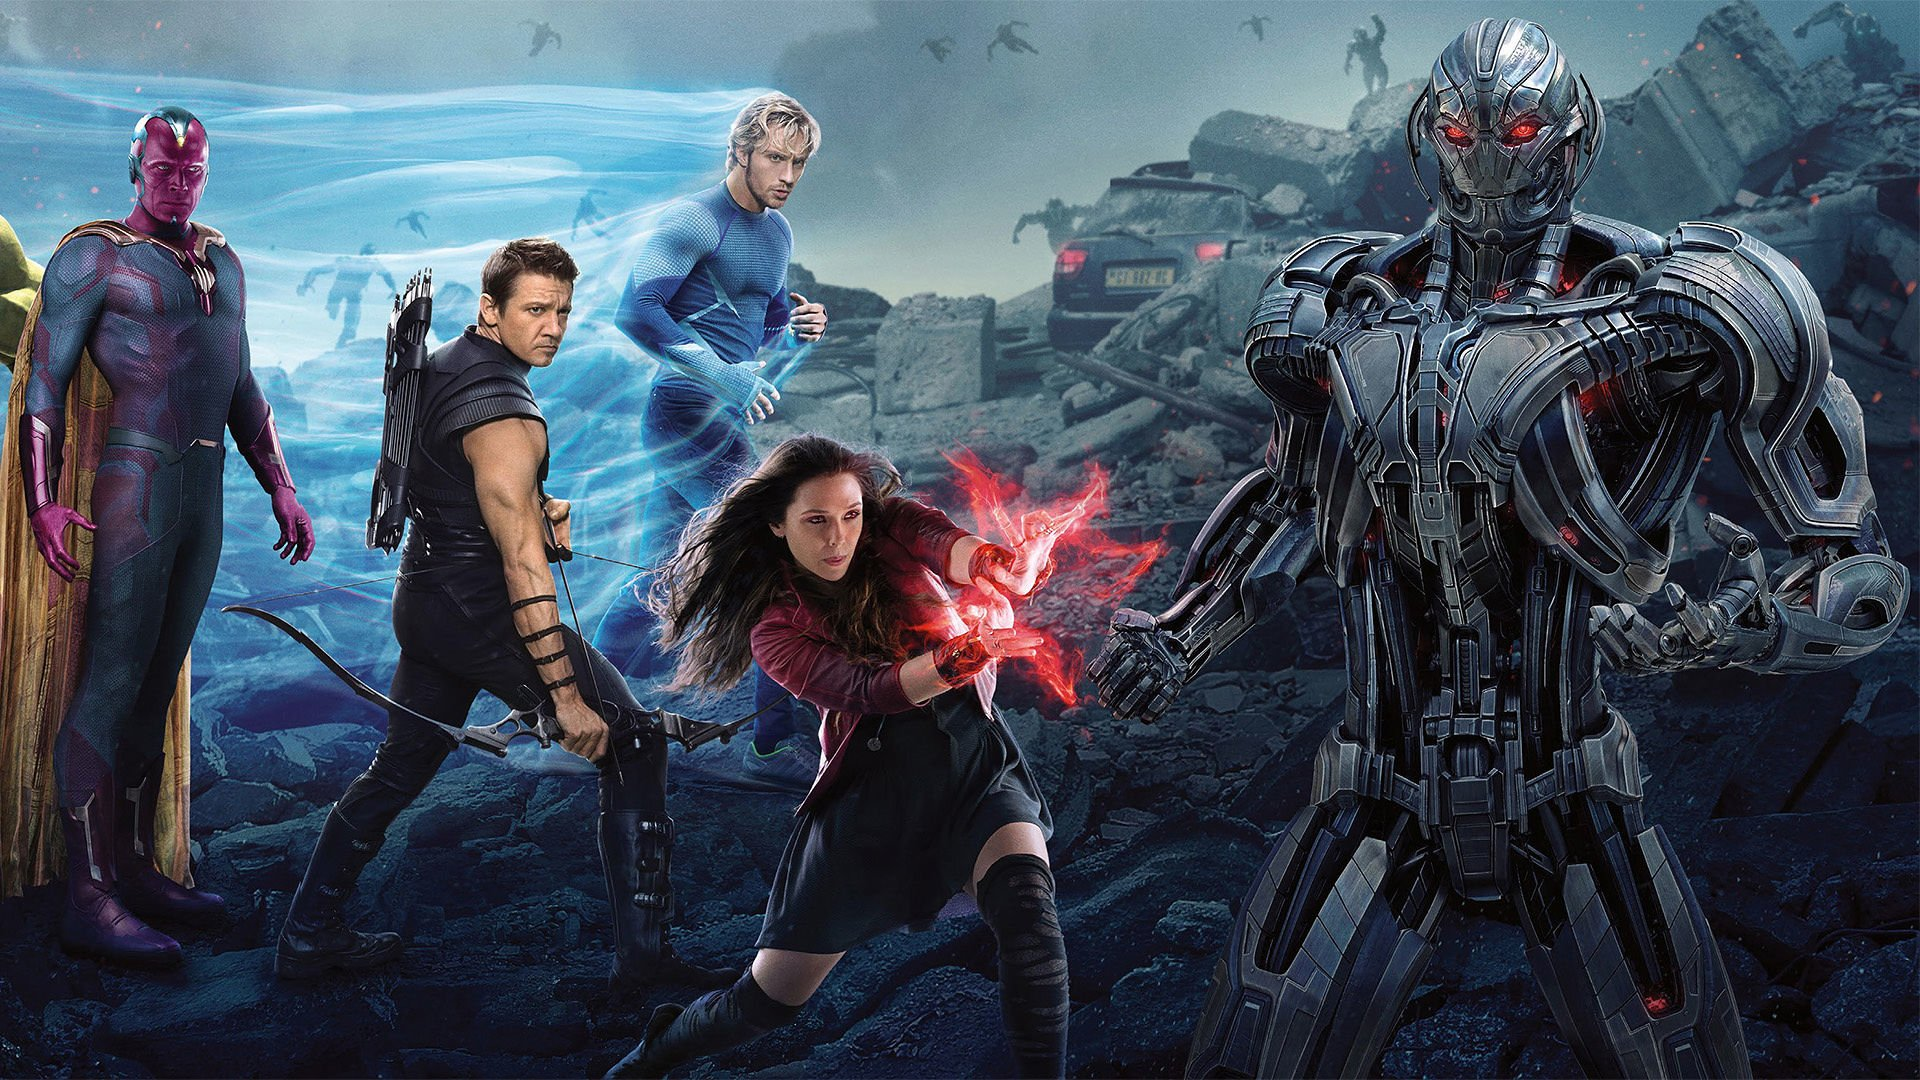 Avatar D Wallpaper Avengers Age Of Ultron Full Hd Wallpaper And Background